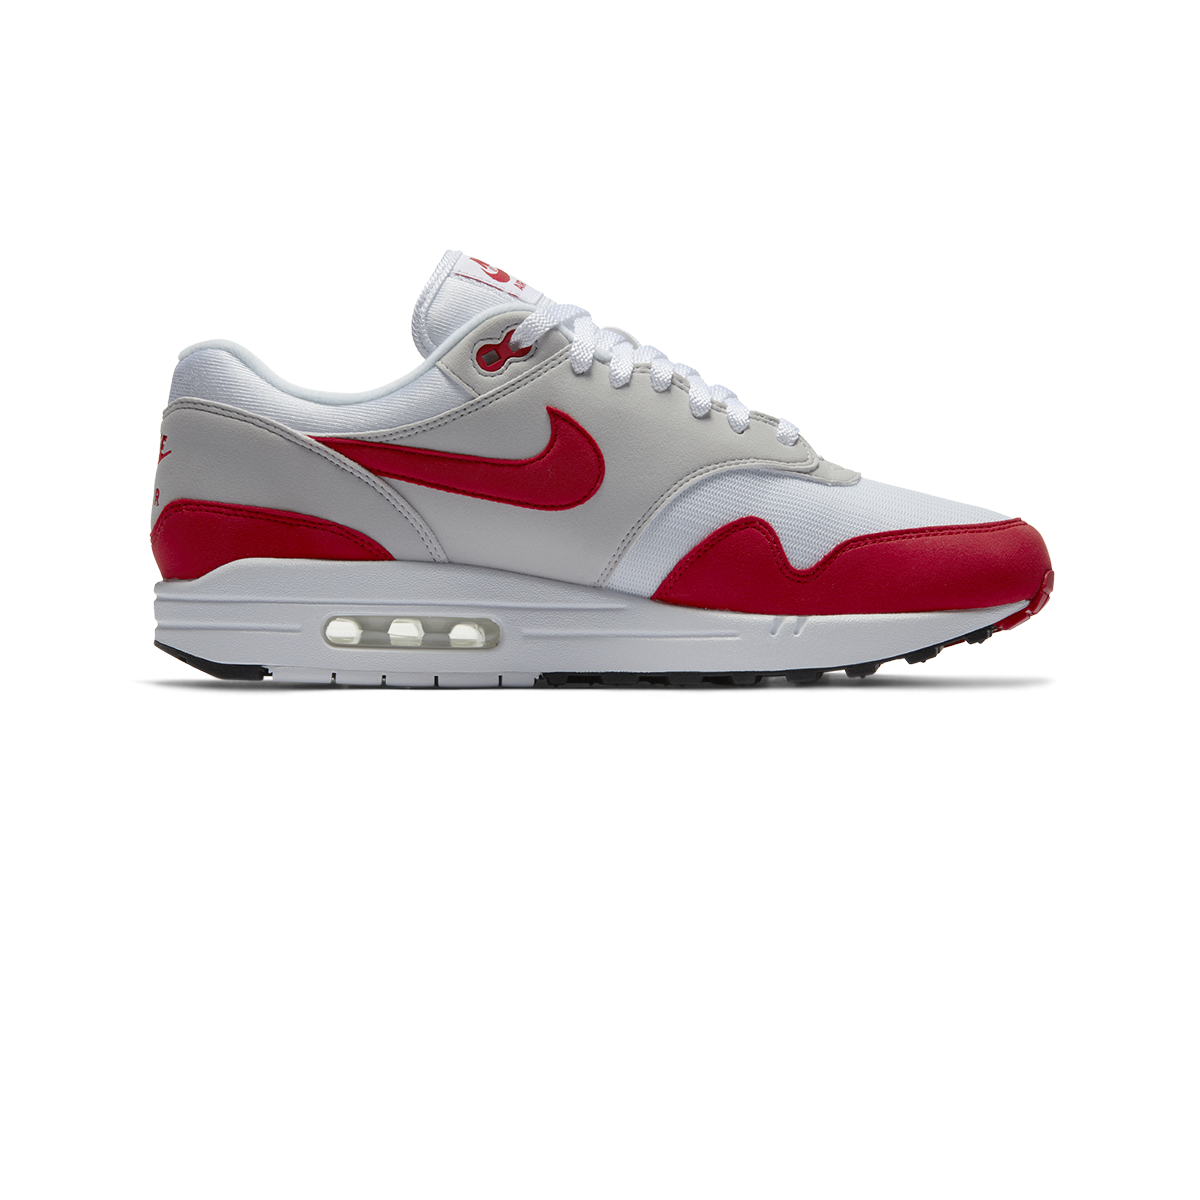 meilleure sélection 3b80b 65aed Nike Air Max 1 OG Anniversary white / university red - Men |  Holypopstore.com